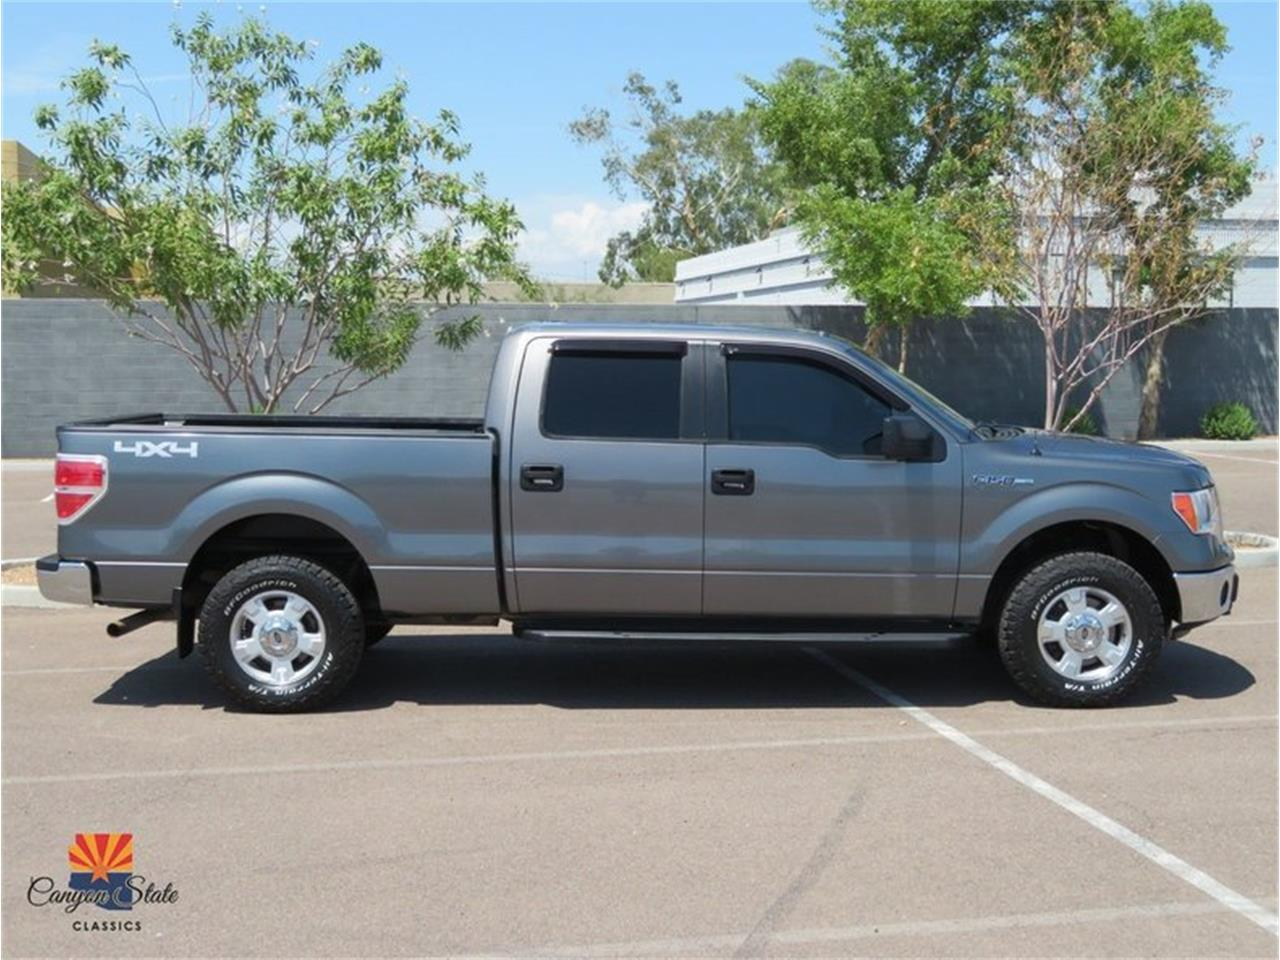 2014 Ford F150 for sale in Tempe, AZ – photo 33